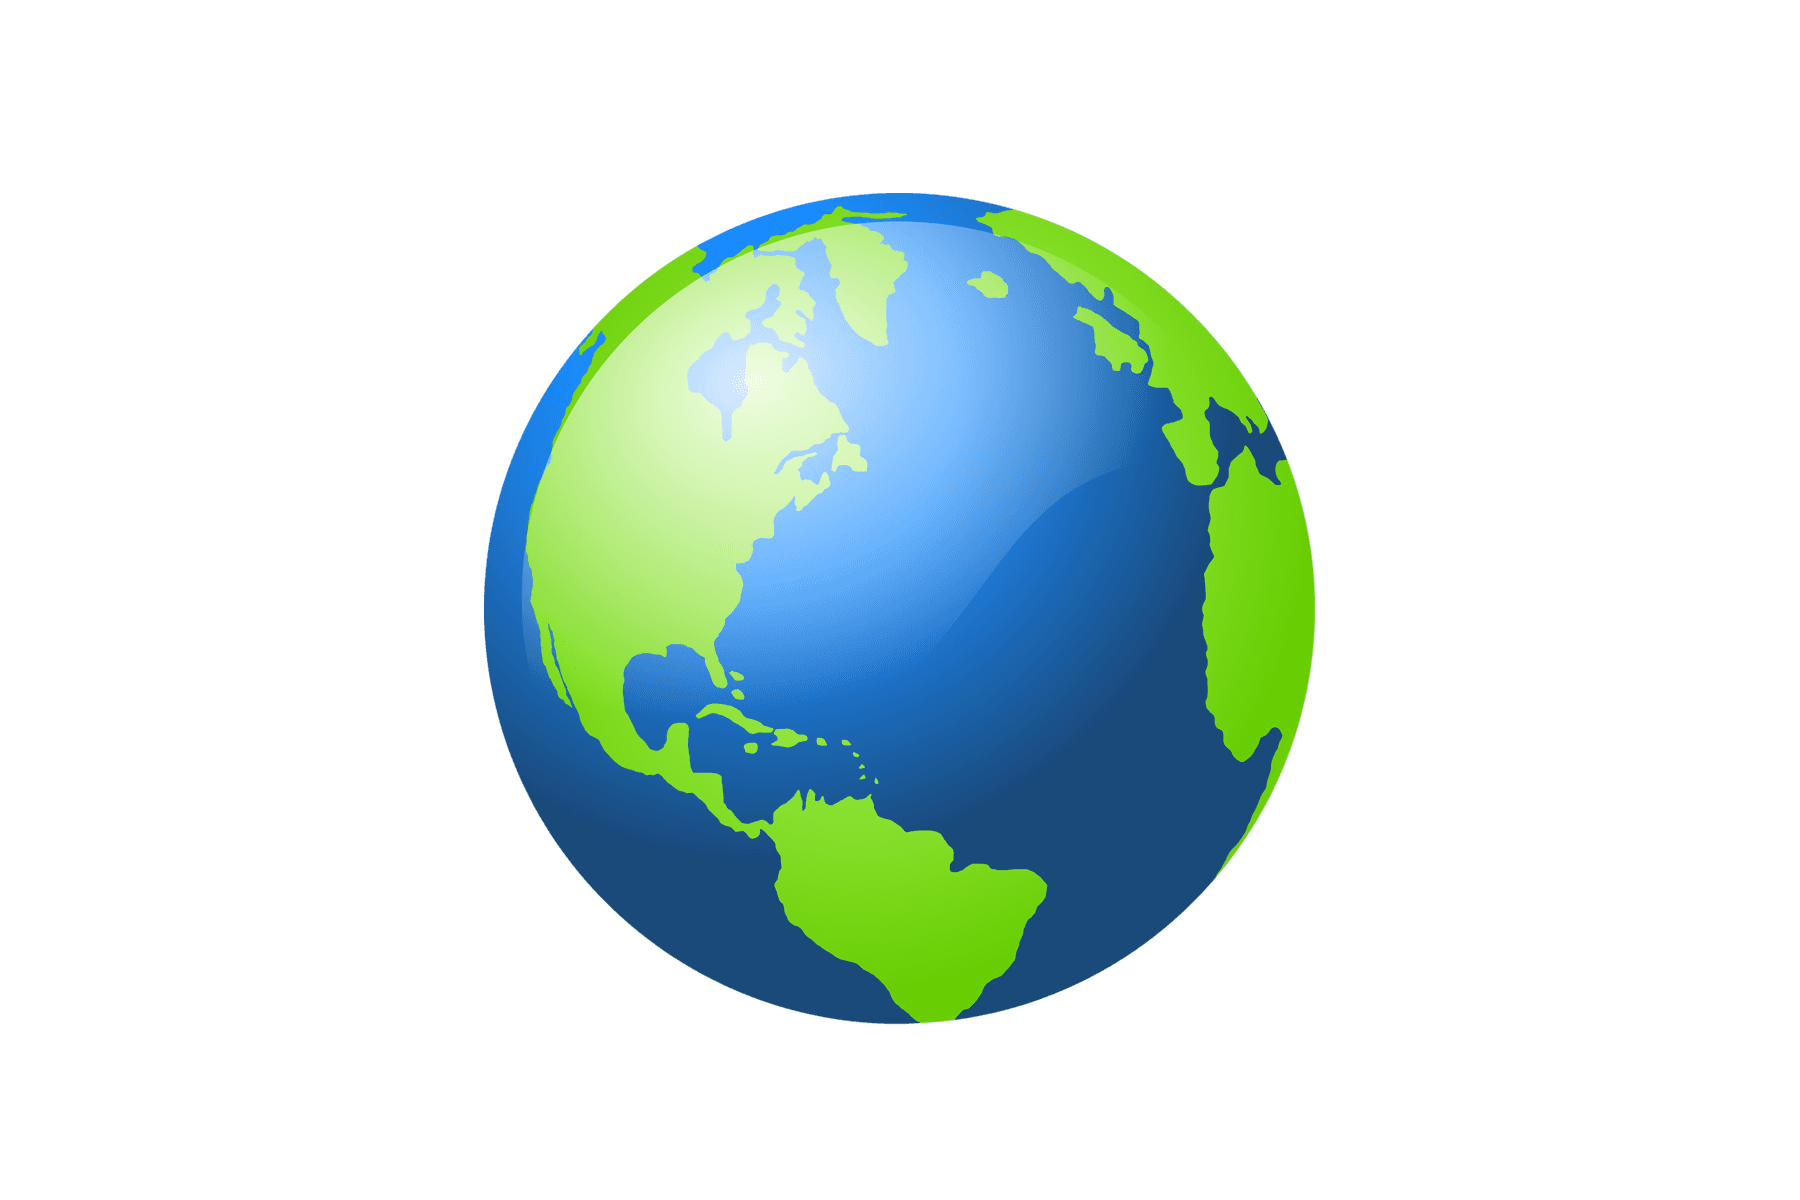 Pure Water Solutions